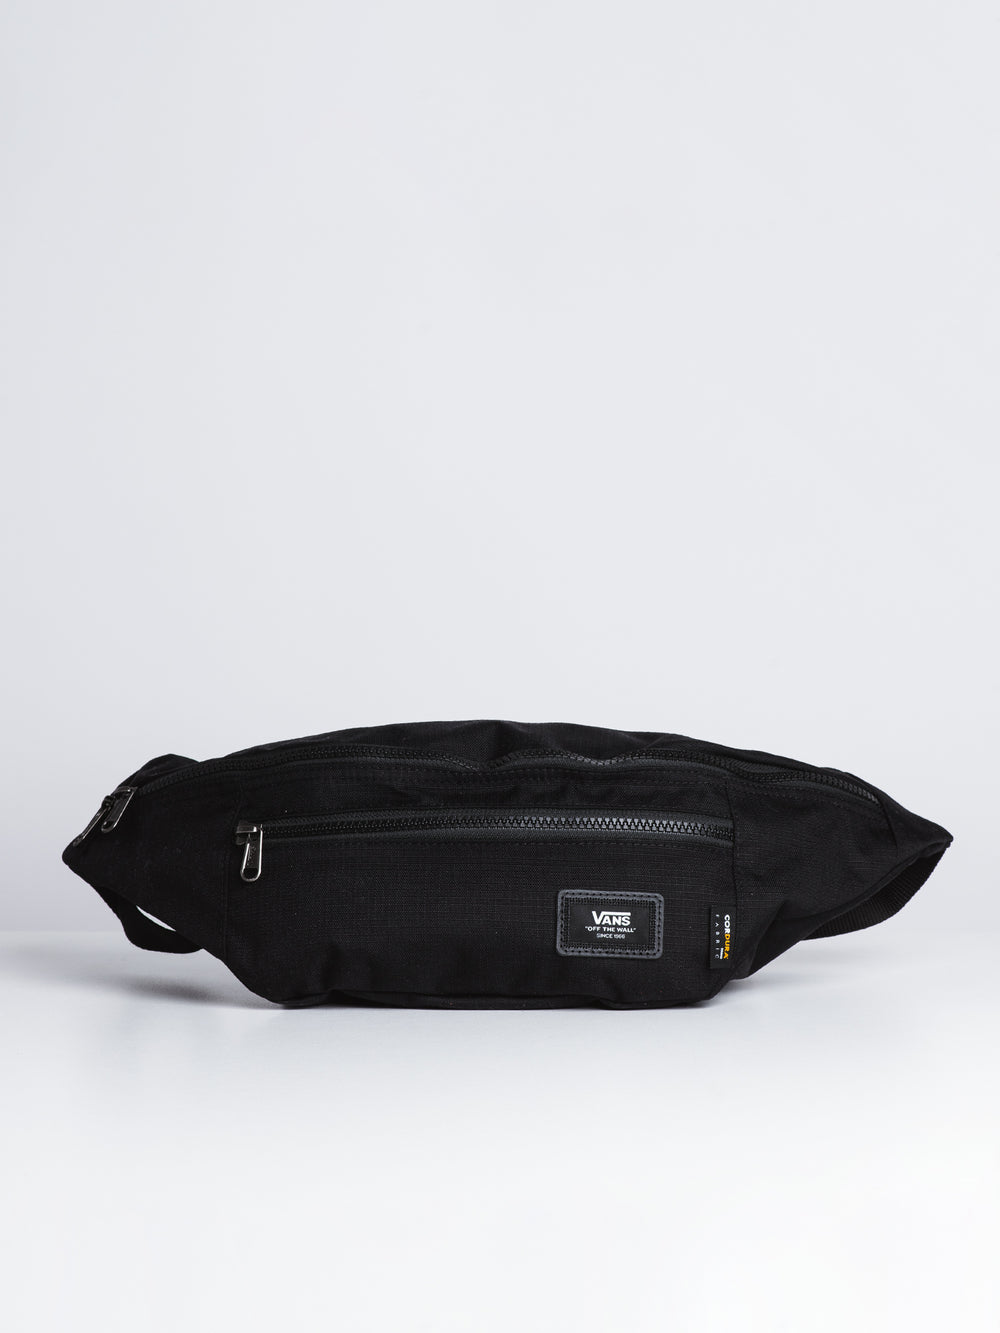 WARD XBODY PACK - BLACK